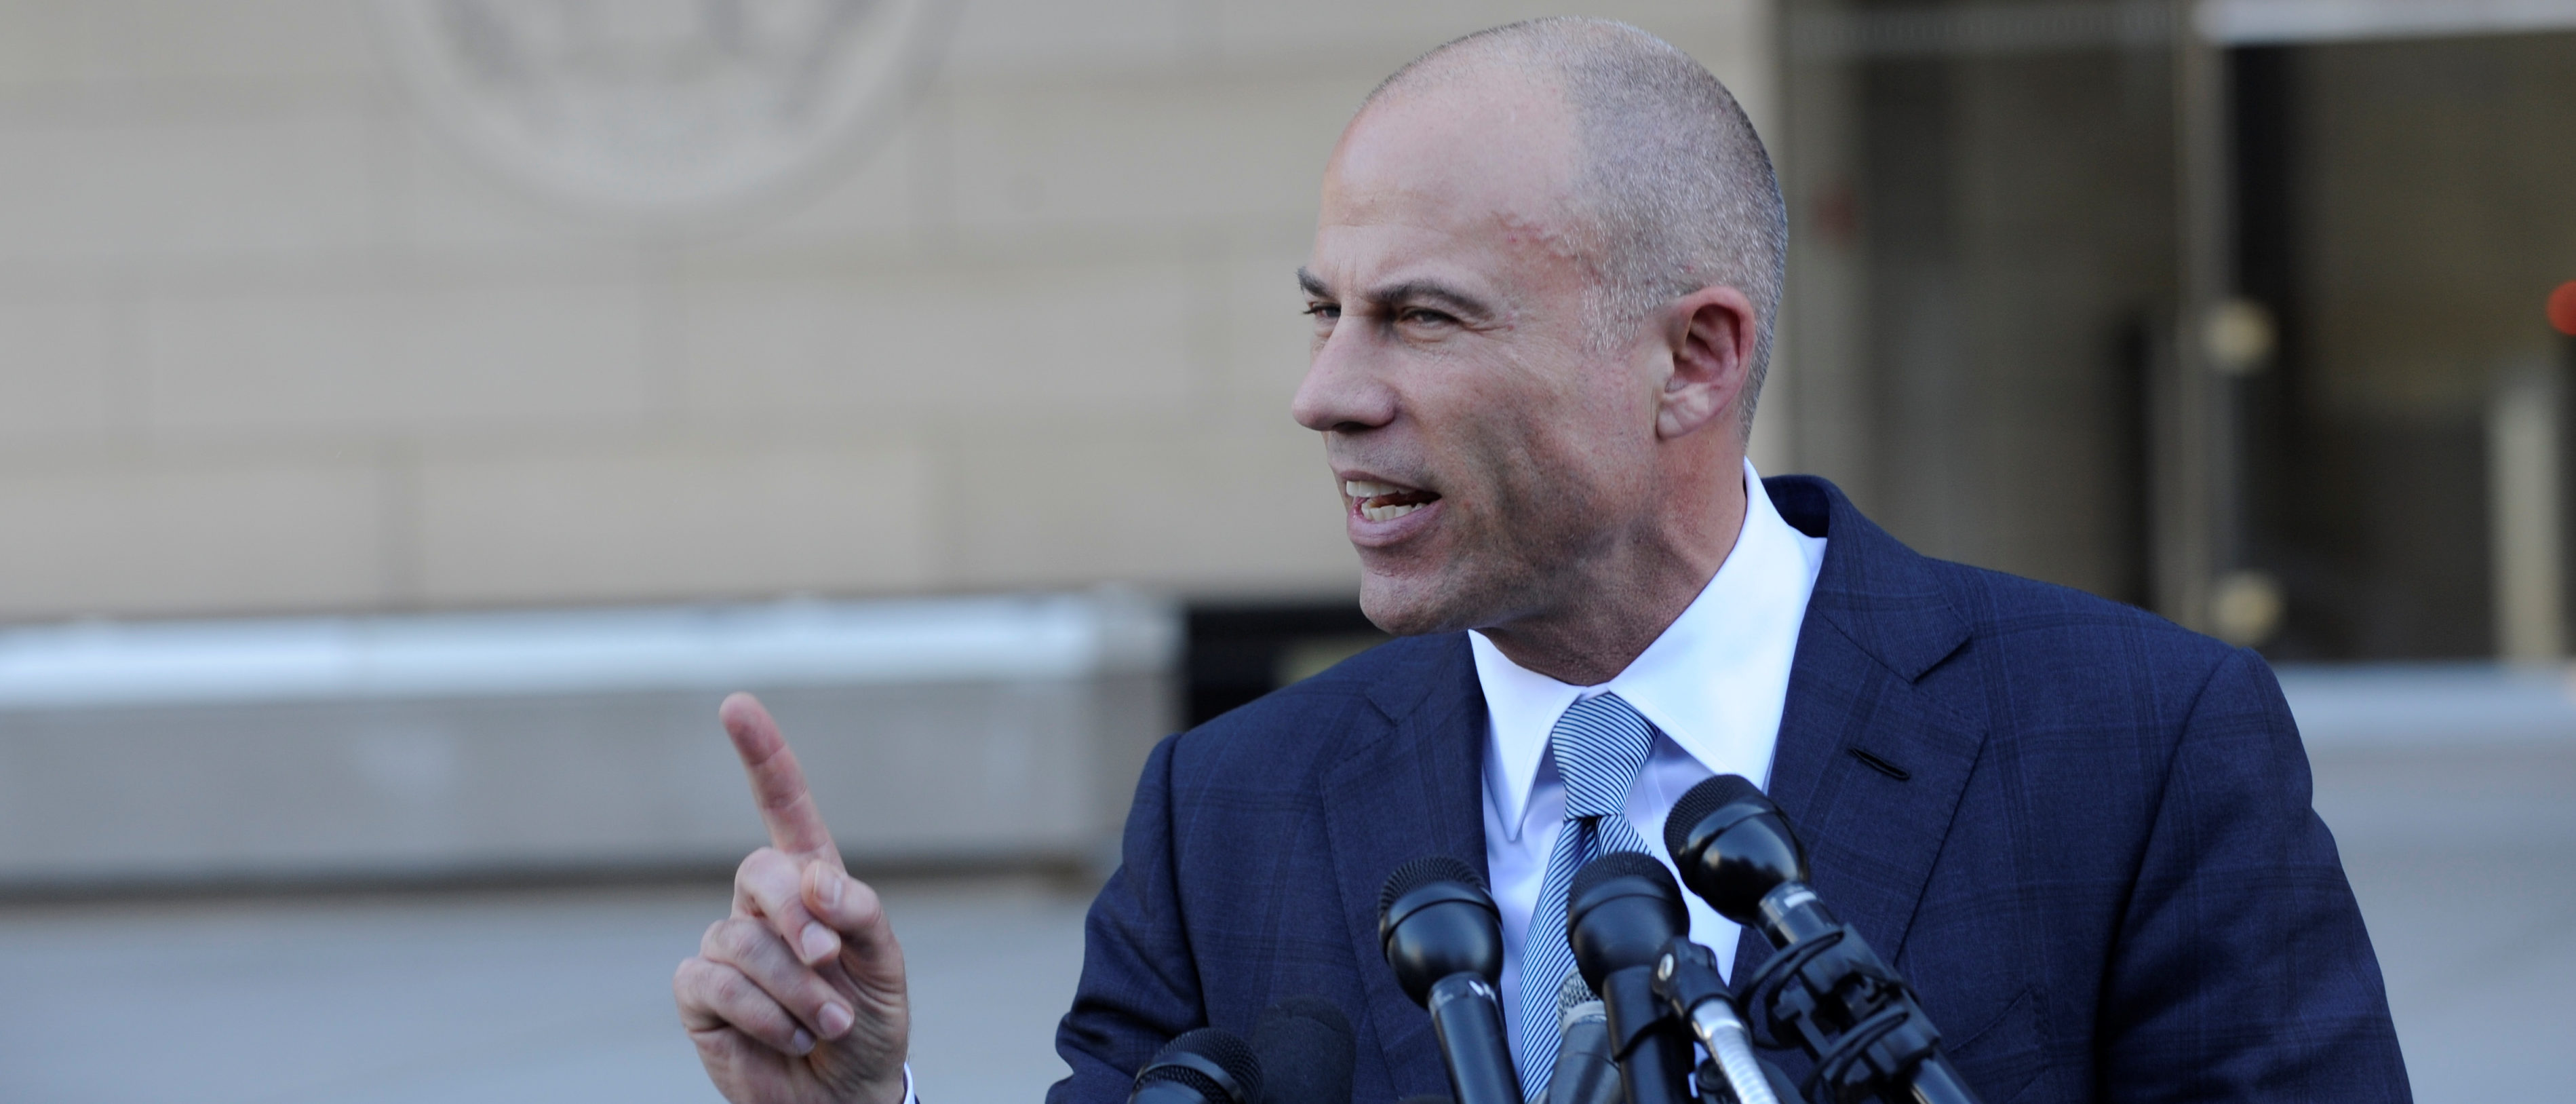 Avenatti Gets Arrested, And Suddenly Due Process Is Back In Vogue